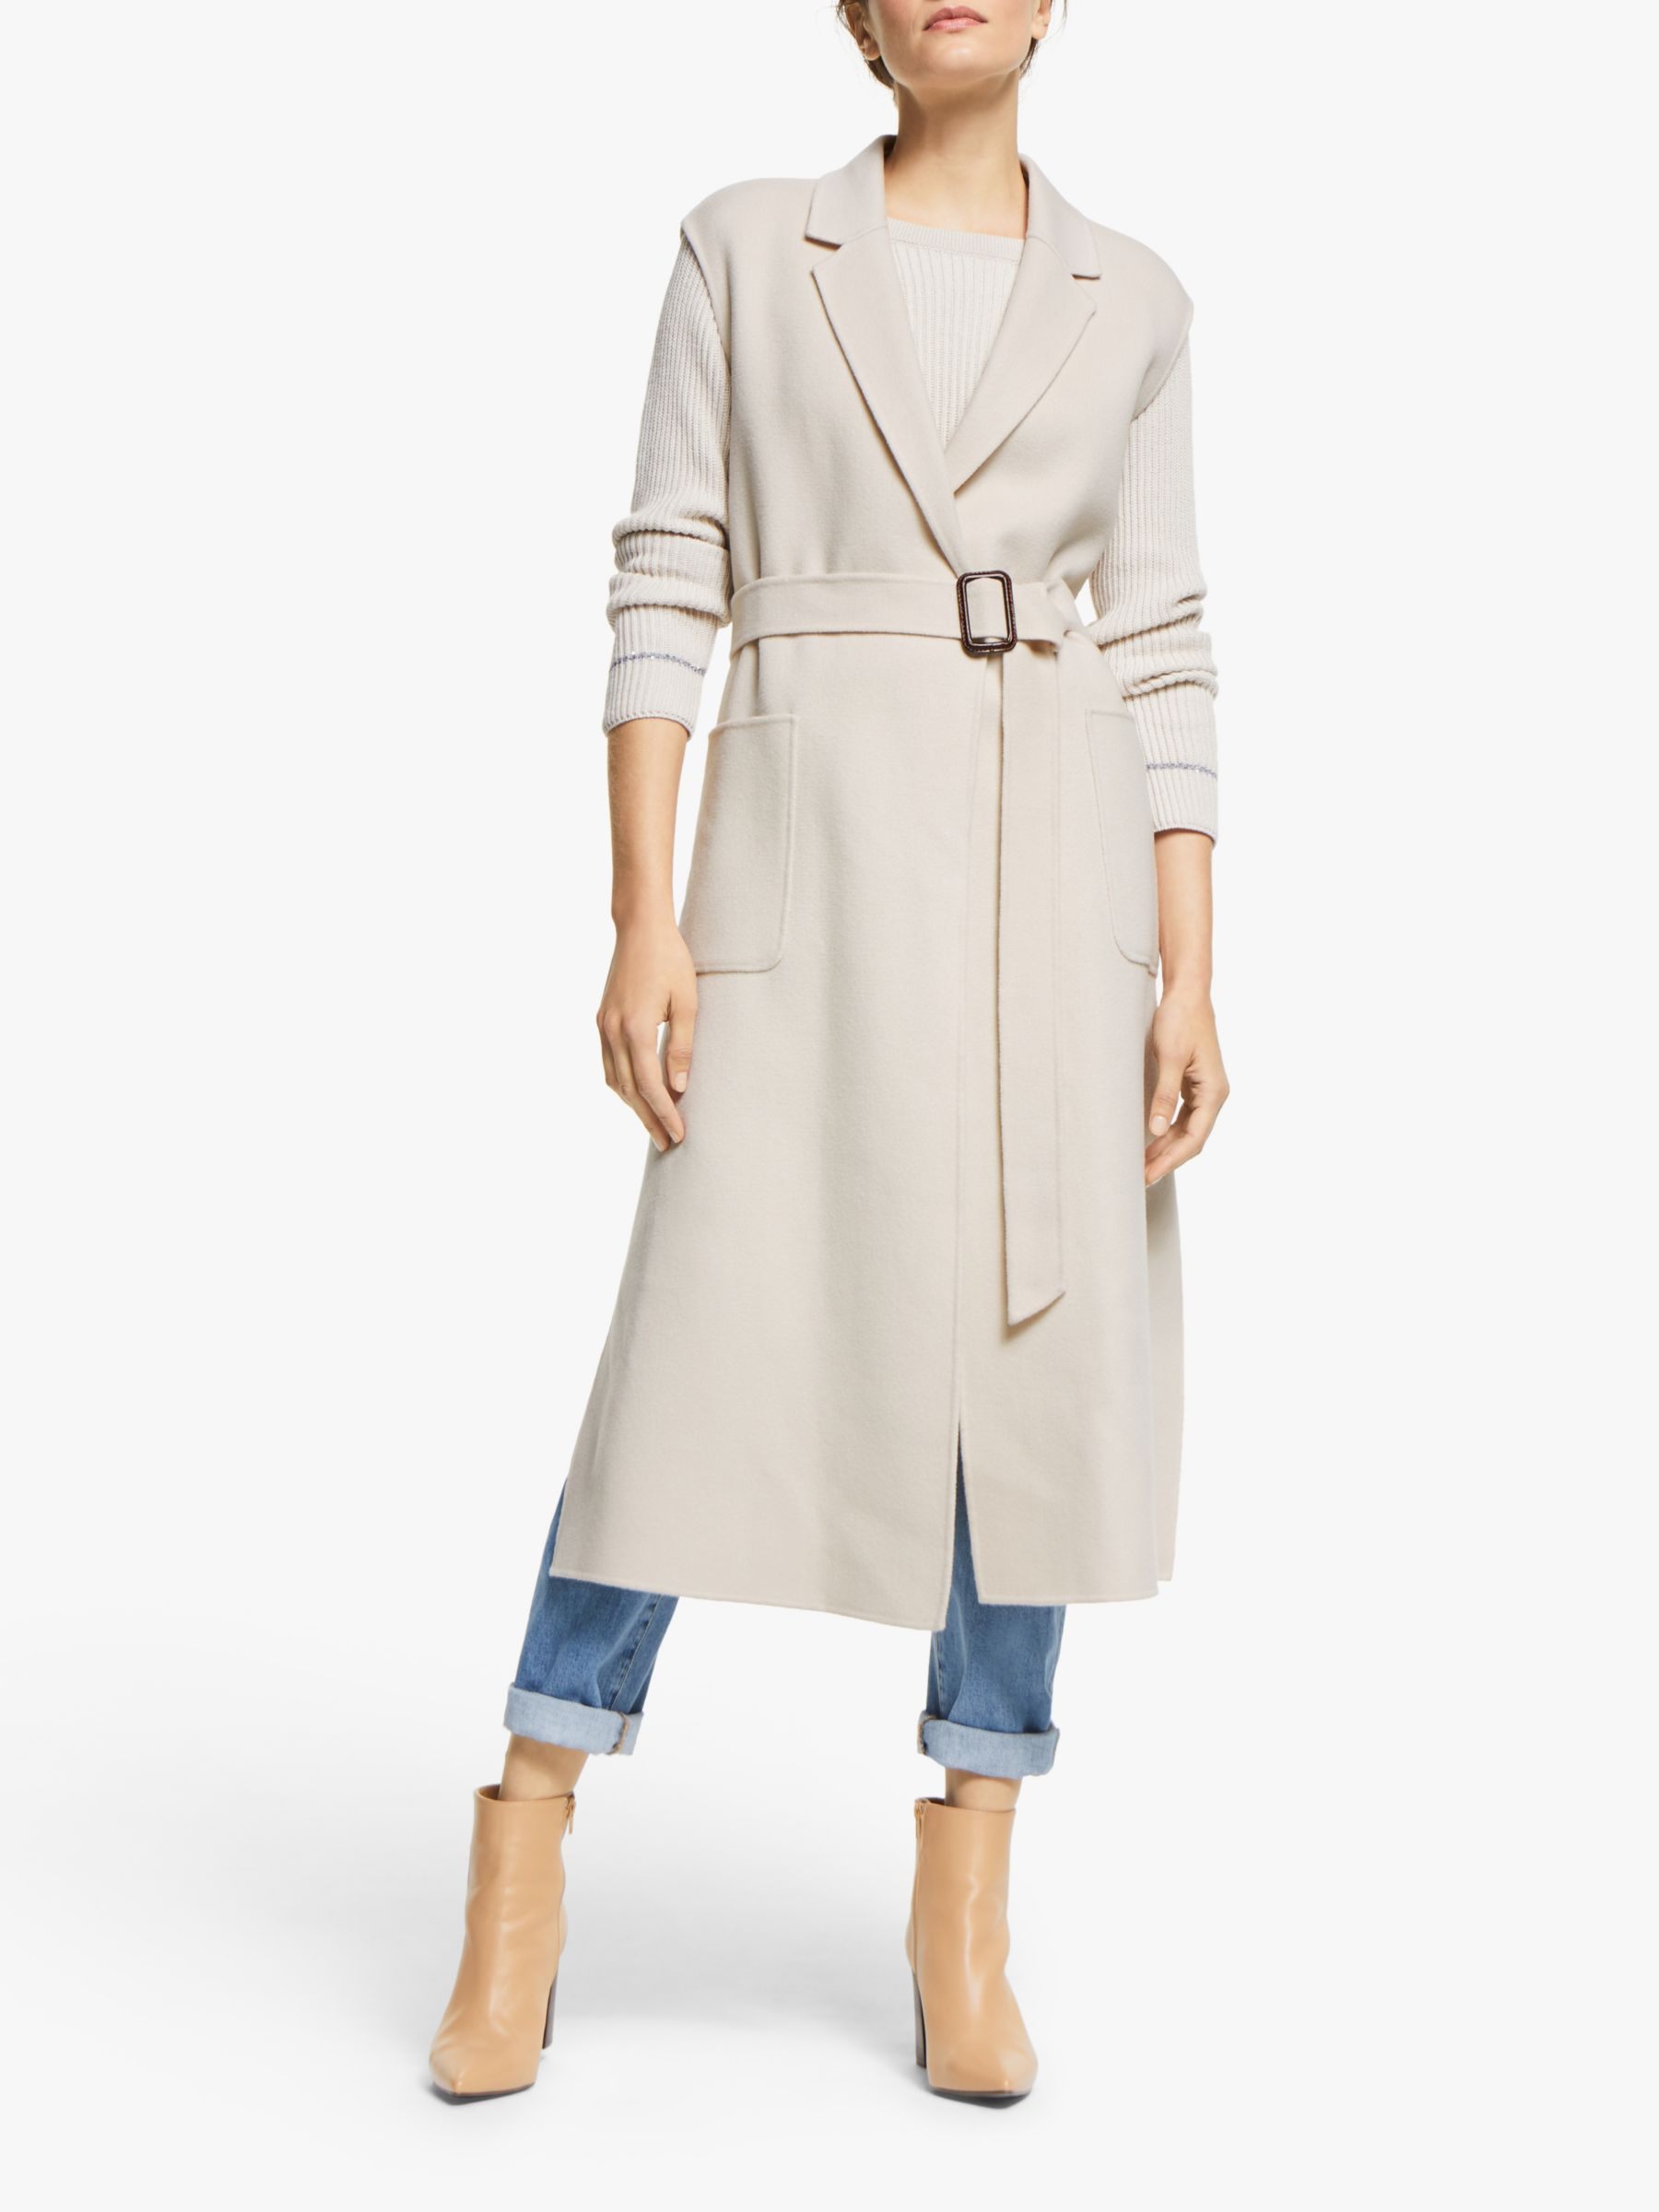 WEEKEND MaxMara Weekend MaxMara Sapri Long Gilet, Ivory